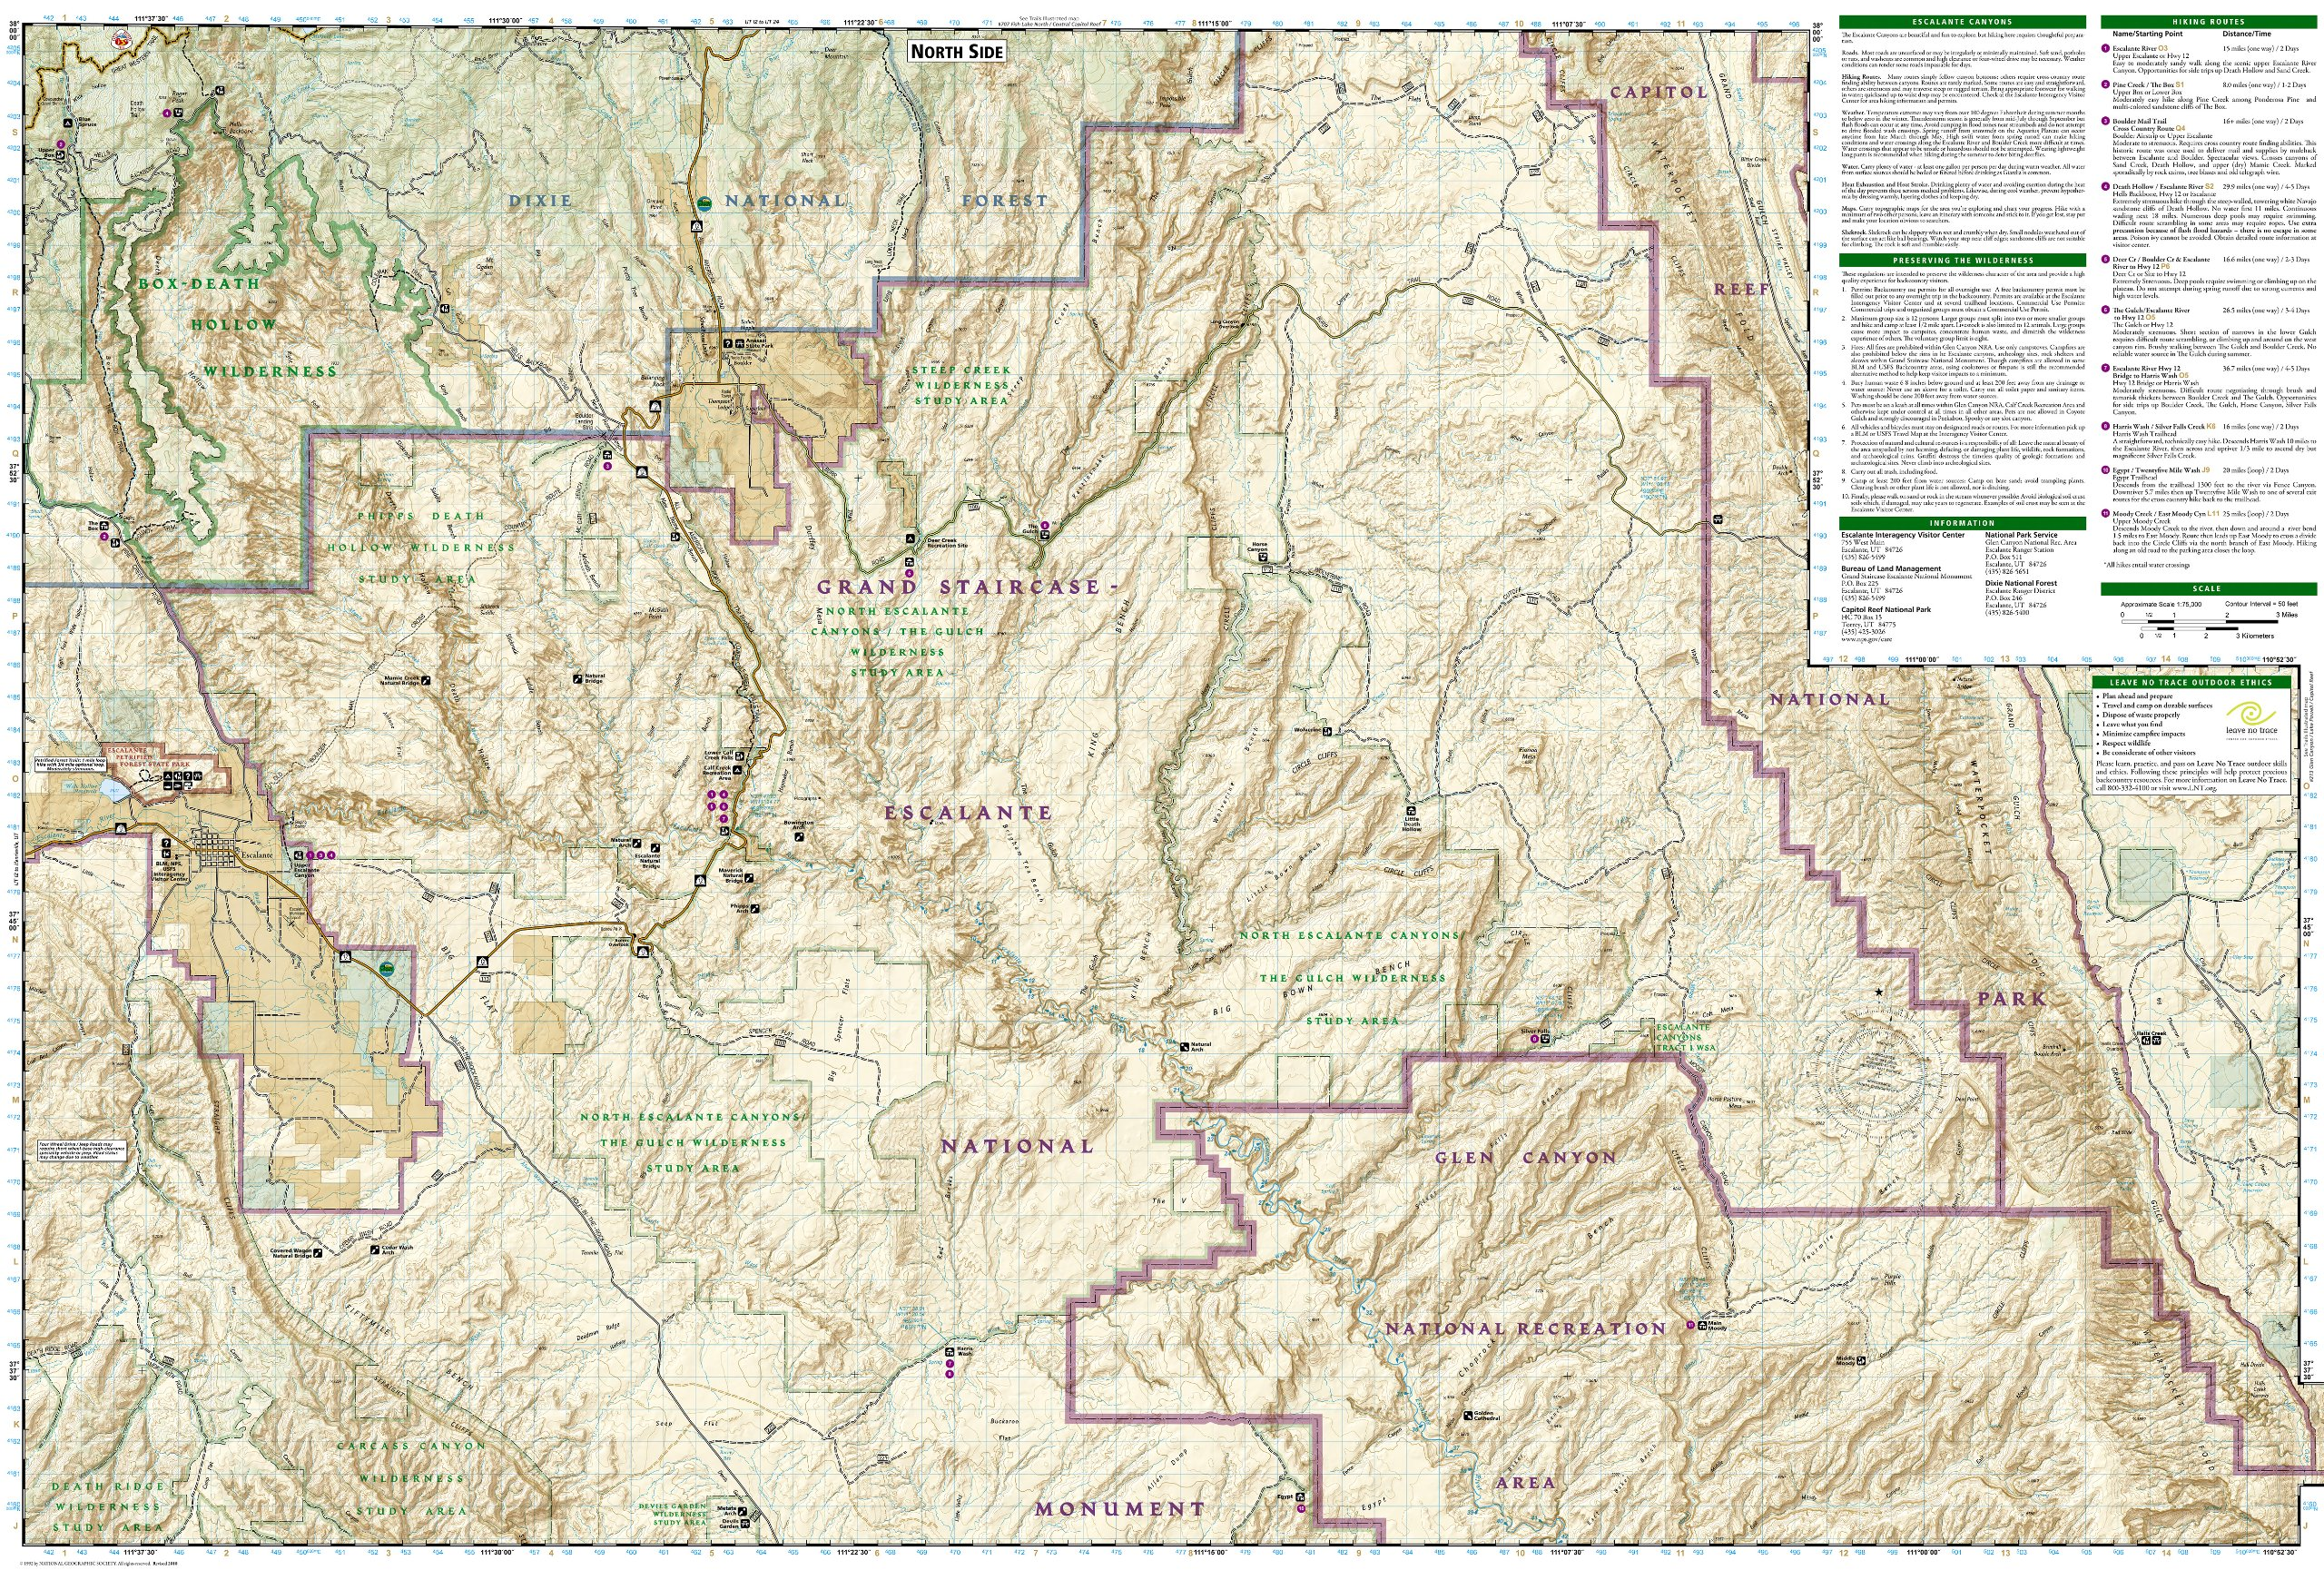 Grand Staircase Escalante Map Canyons of the Escalante [Grand Staircase Escalante National  Grand Staircase Escalante Map